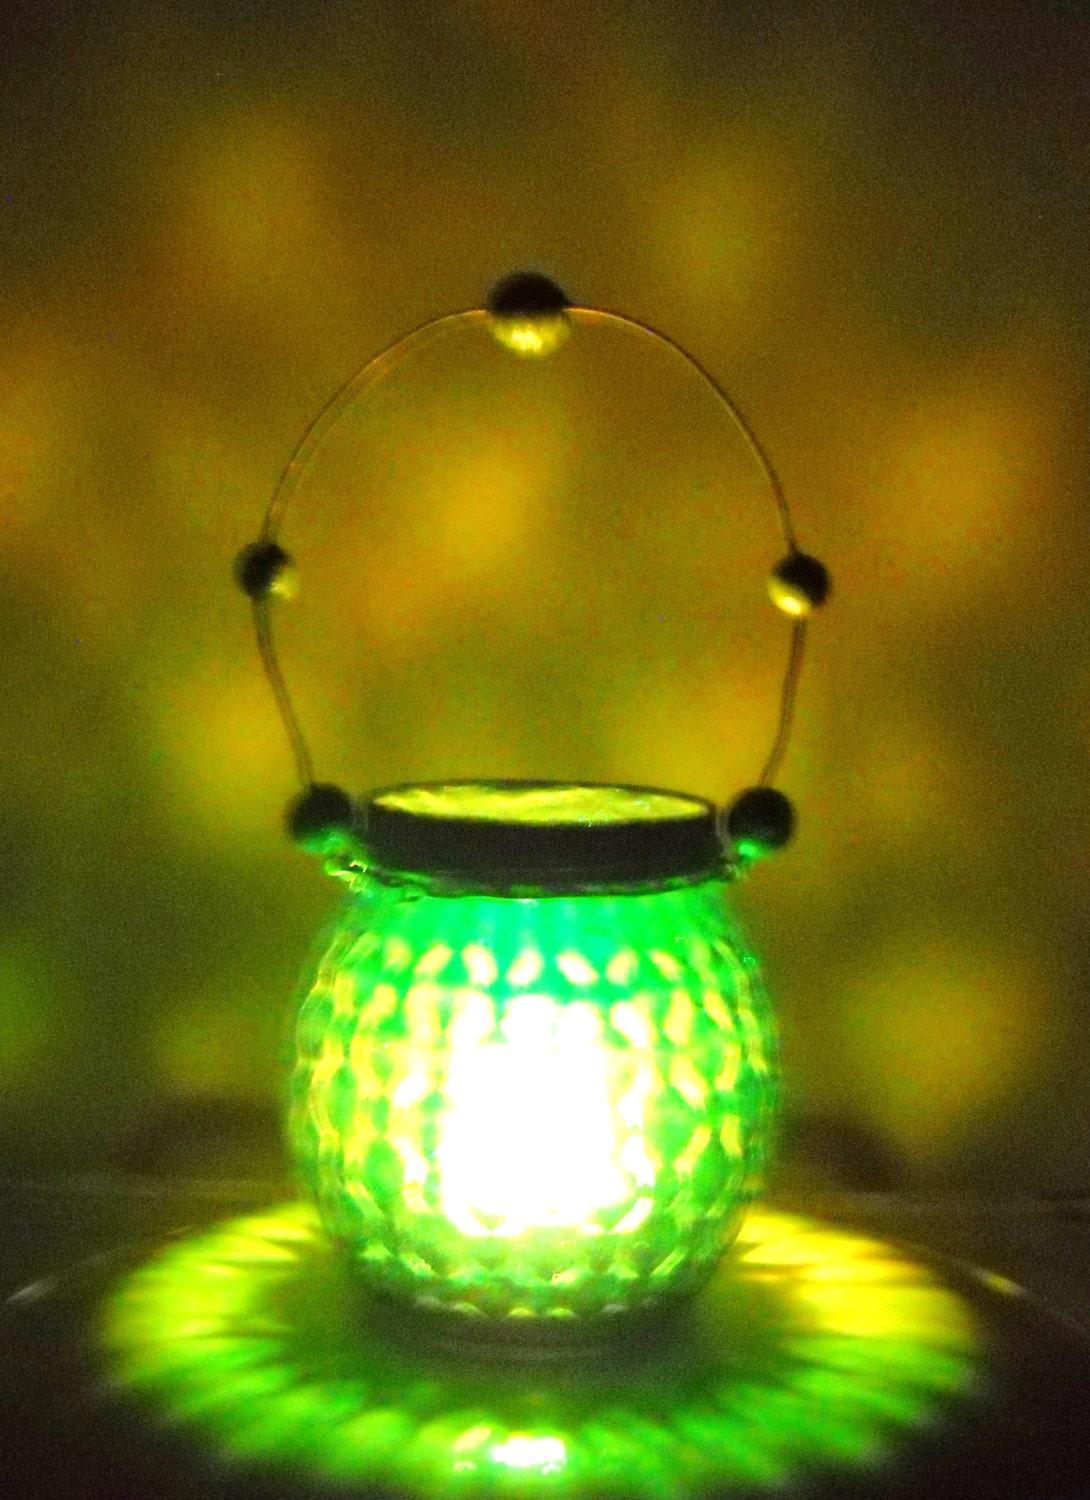 Hanging green lantern  - beaded wire handle - made from a pretty jelly jar - for LED candle - ChickenJungle